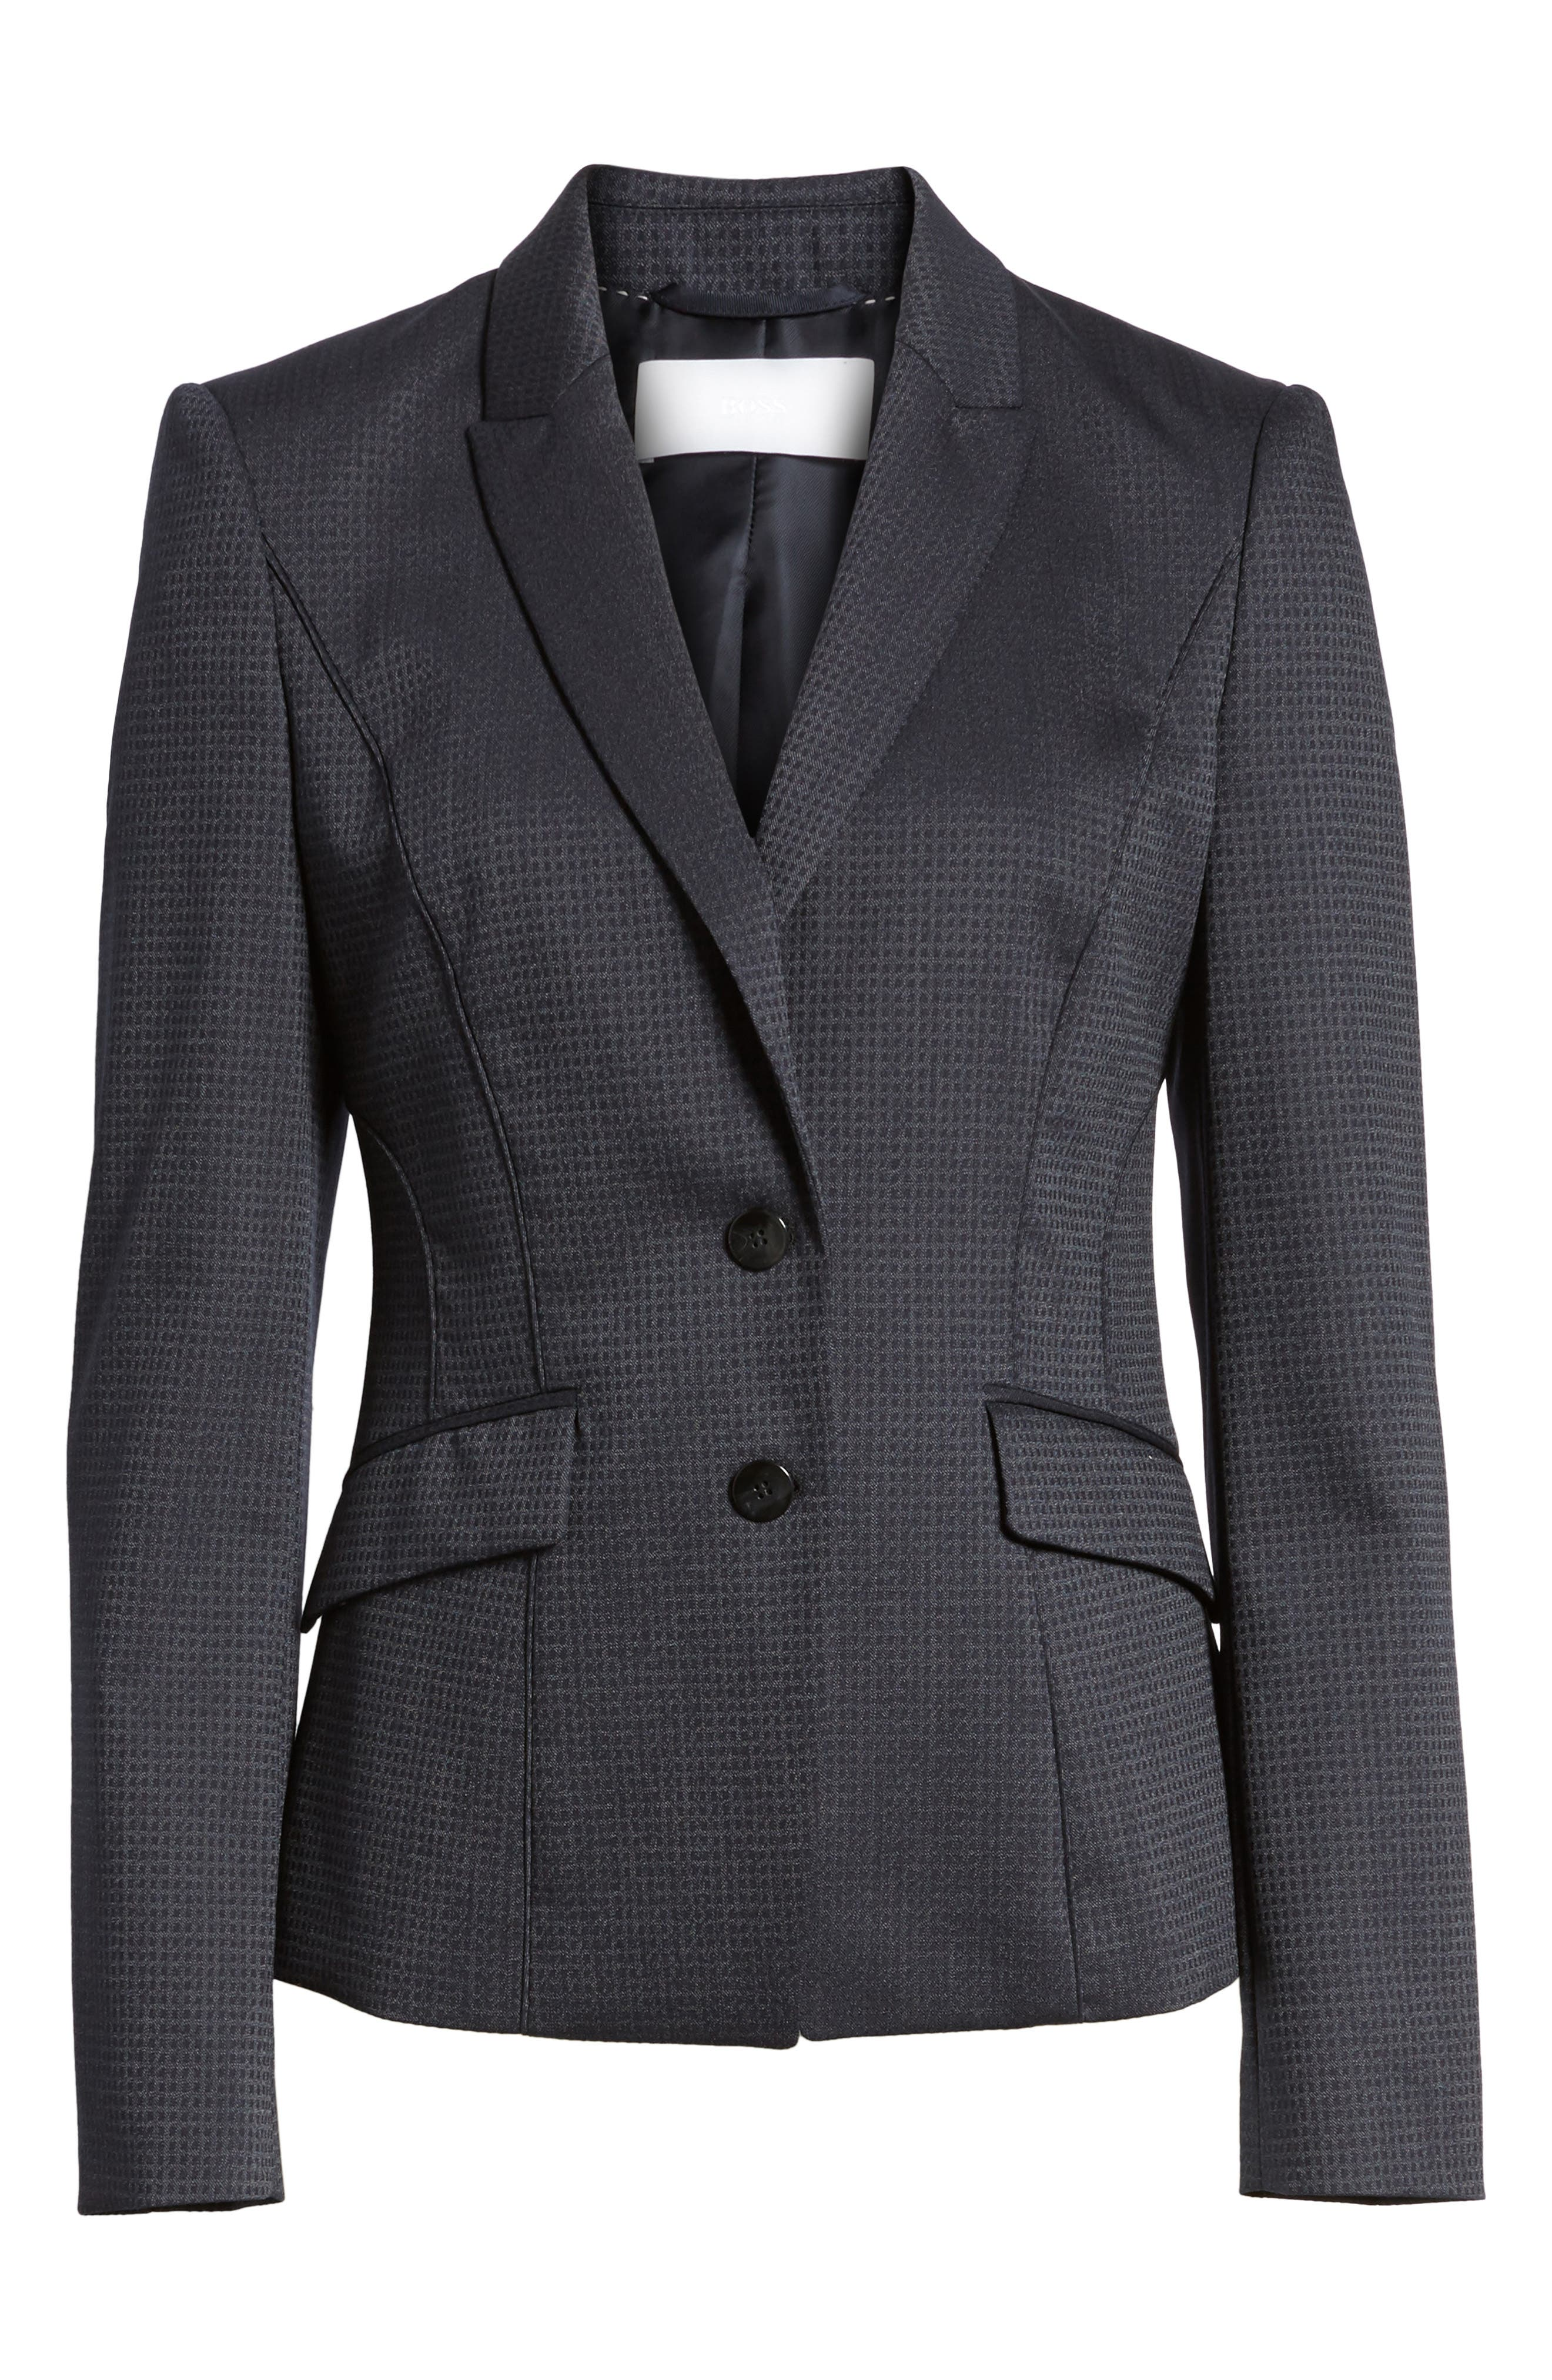 Alternate Image 1 Selected - BOSS Jukani Check Wool Blend Suit Jacket (Petite)